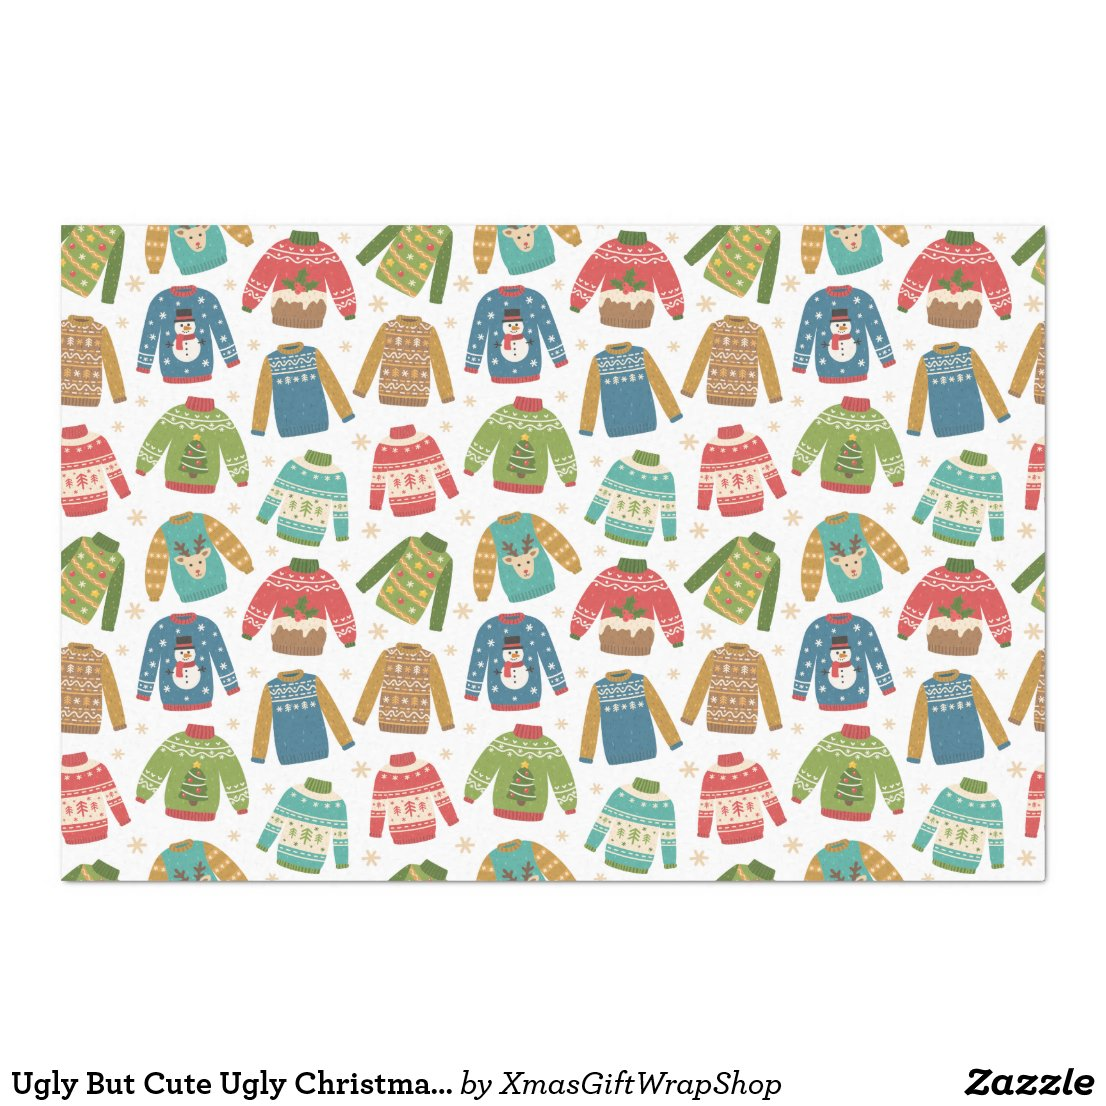 Ugly But Cute Ugly Christmas Sweaters Holiday Tissue Paper